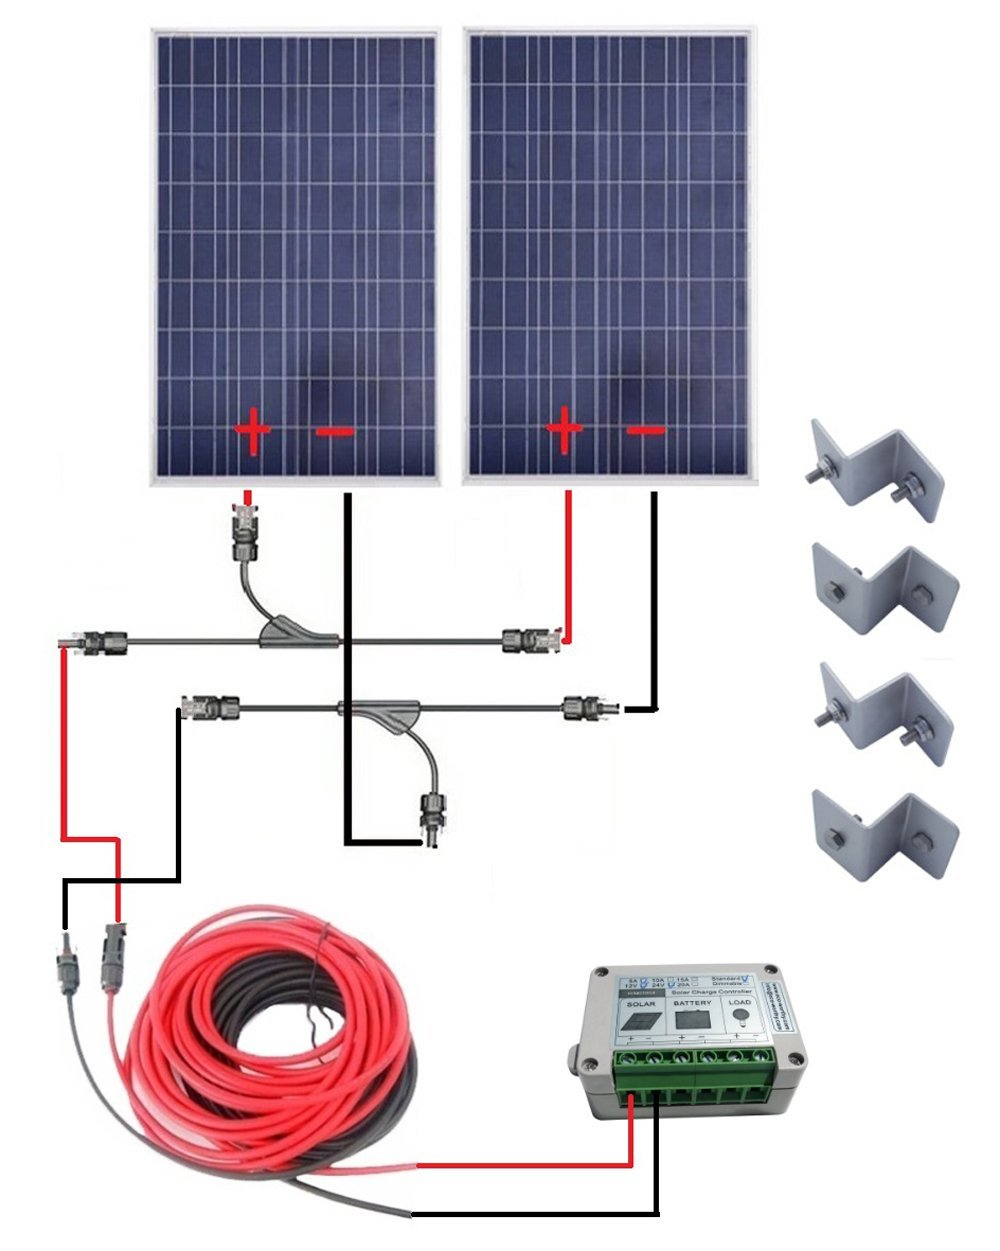 DE stock, 200w solar system for home no tax, COMPLETE KIT 200W Solar Panel cells off grid system, * au eu usa stock complete kit 600w solar panel cells off grid system 600w solar system for home free shipping